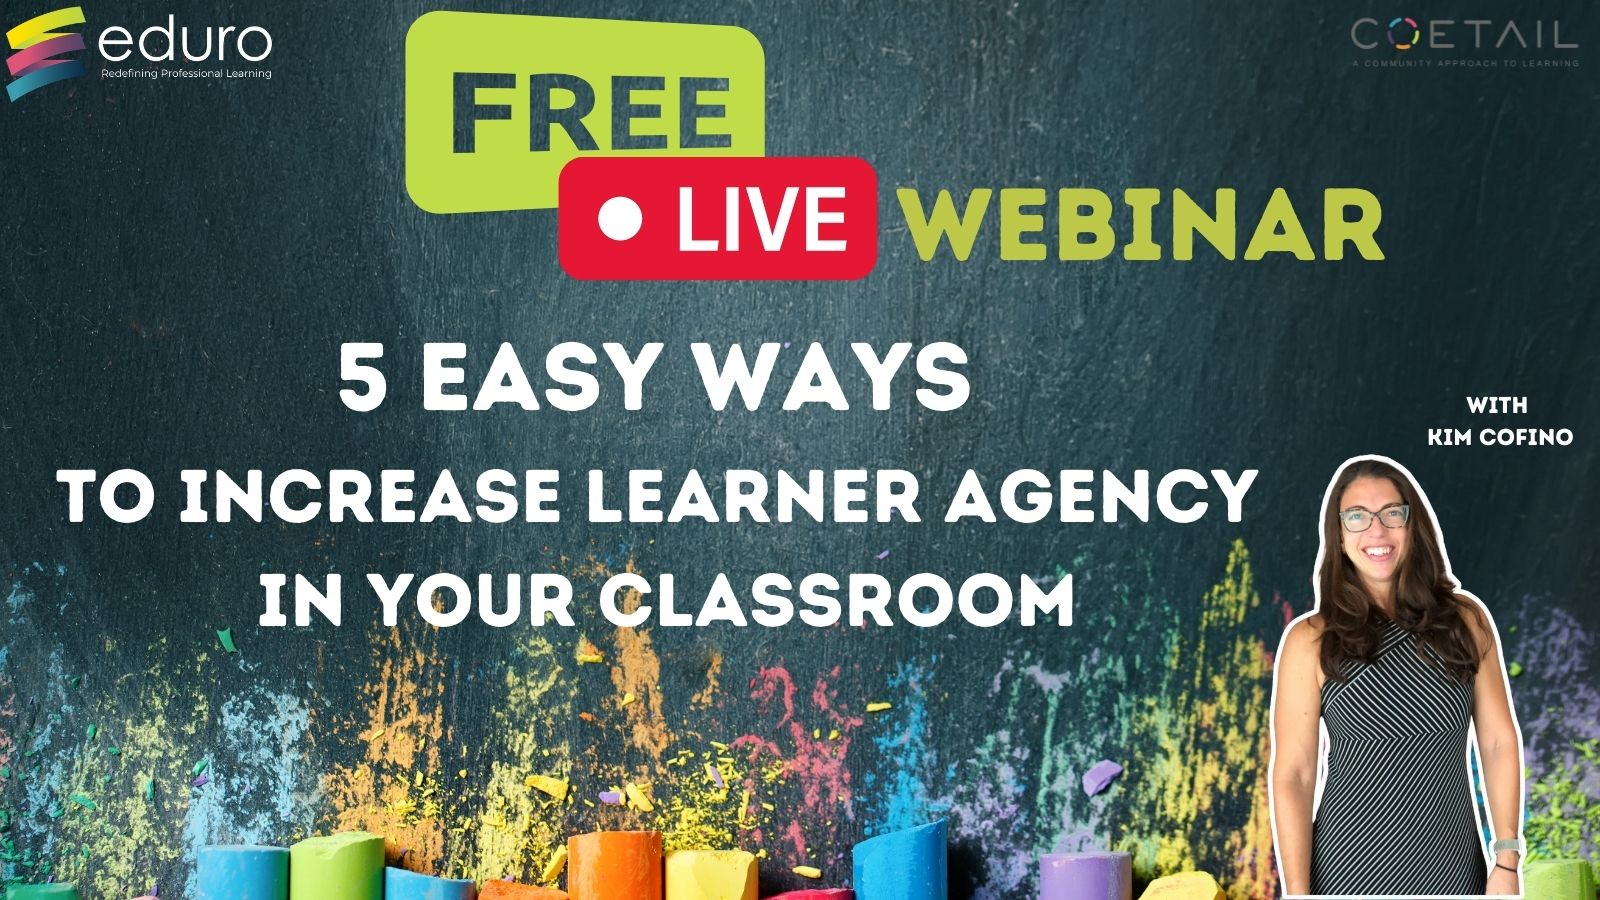 Webinar Replay: 5 Easy Ways to Increase Learner Agency in Your Classroom